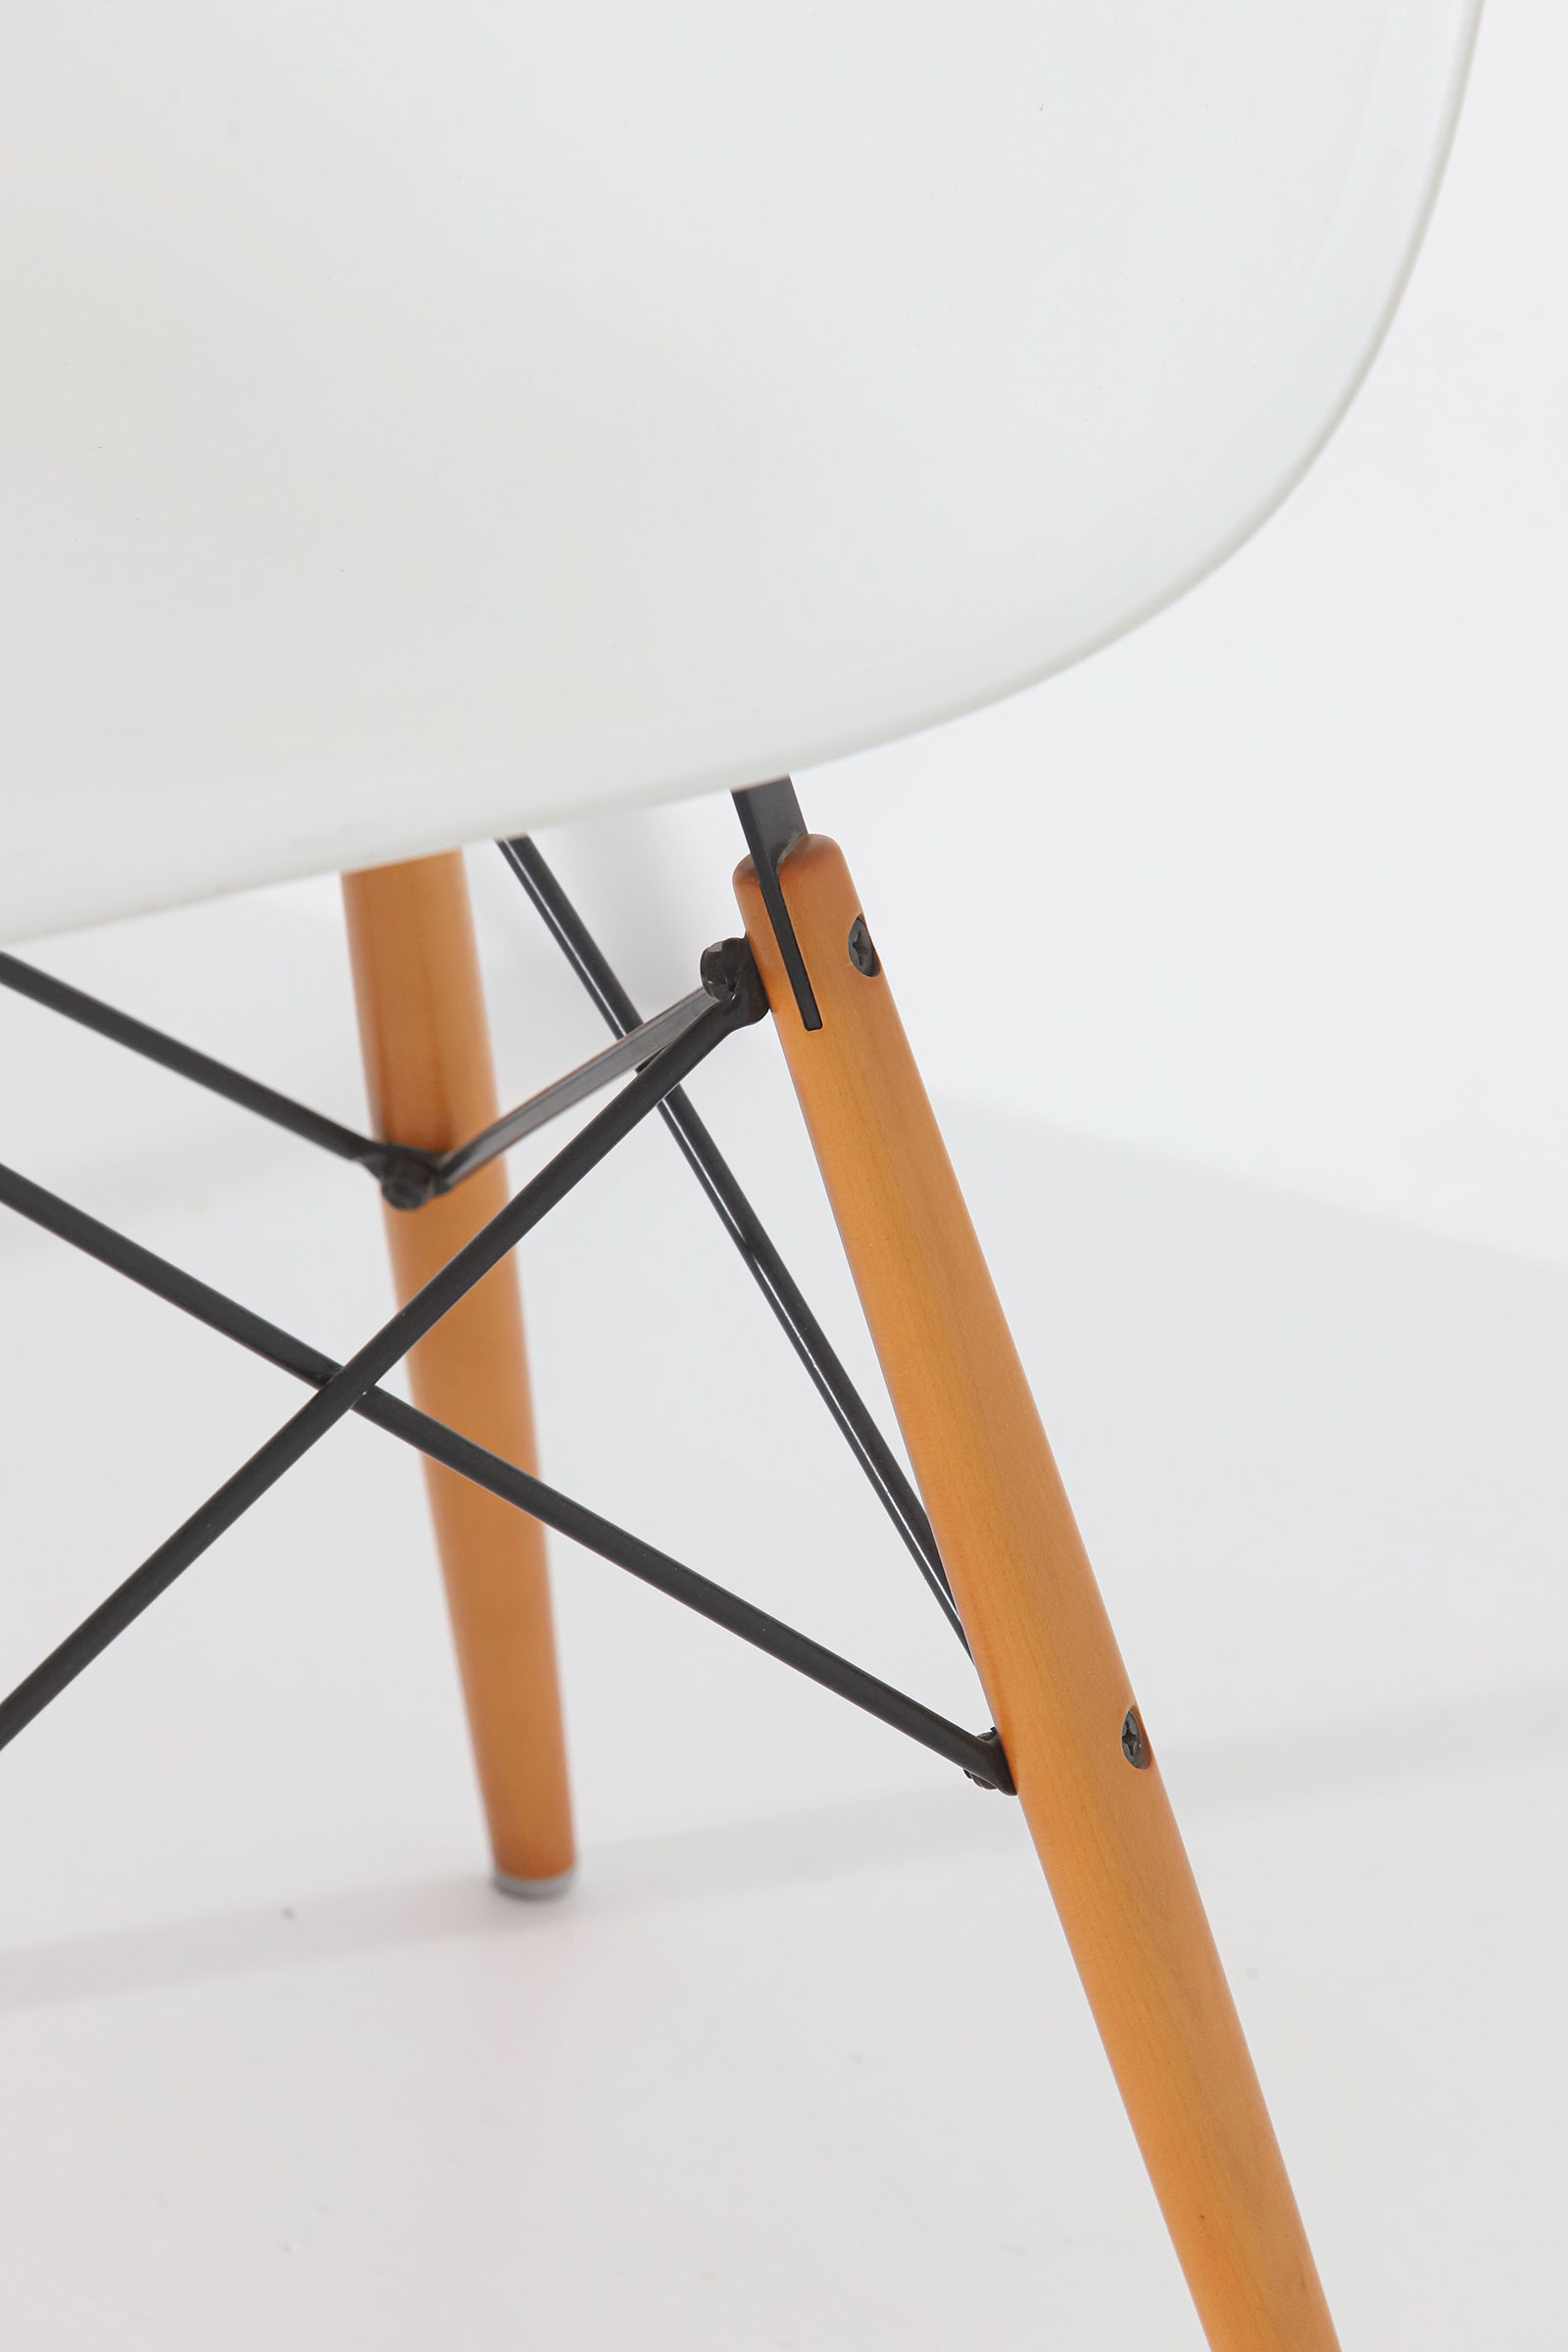 Eames DSW Vitra chairsimage 4